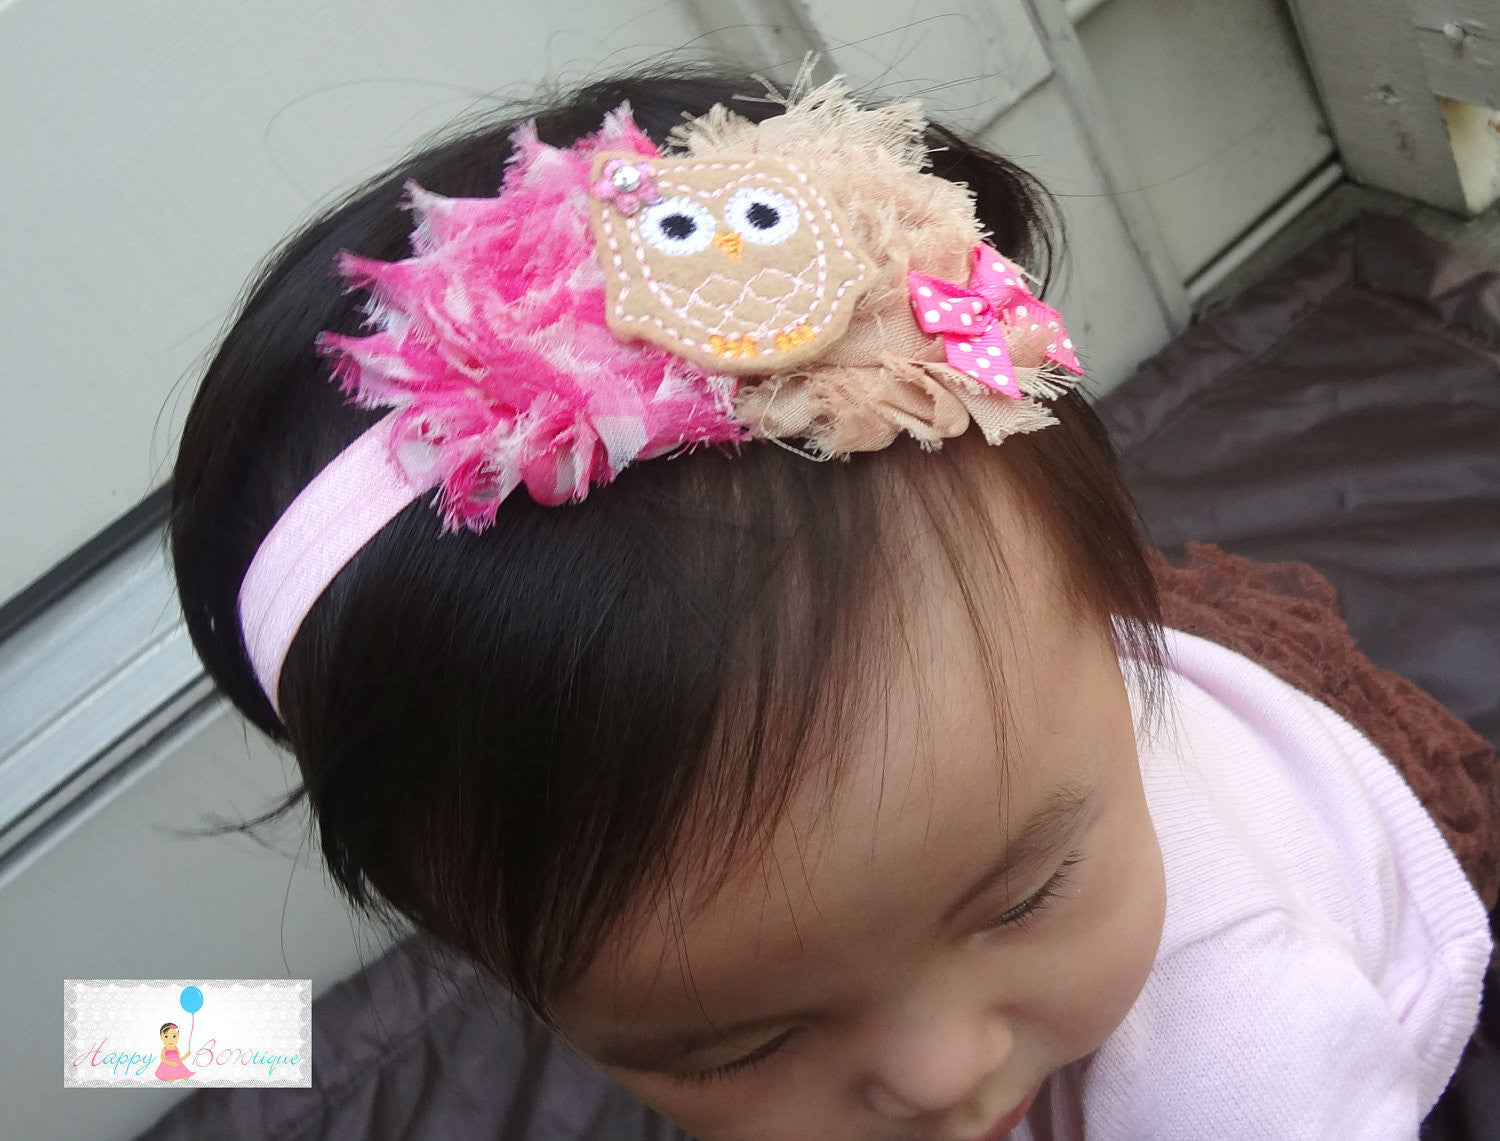 Pink Owl Girls Headband - Happy BOWtique - children's clothing, Baby Girl clothing